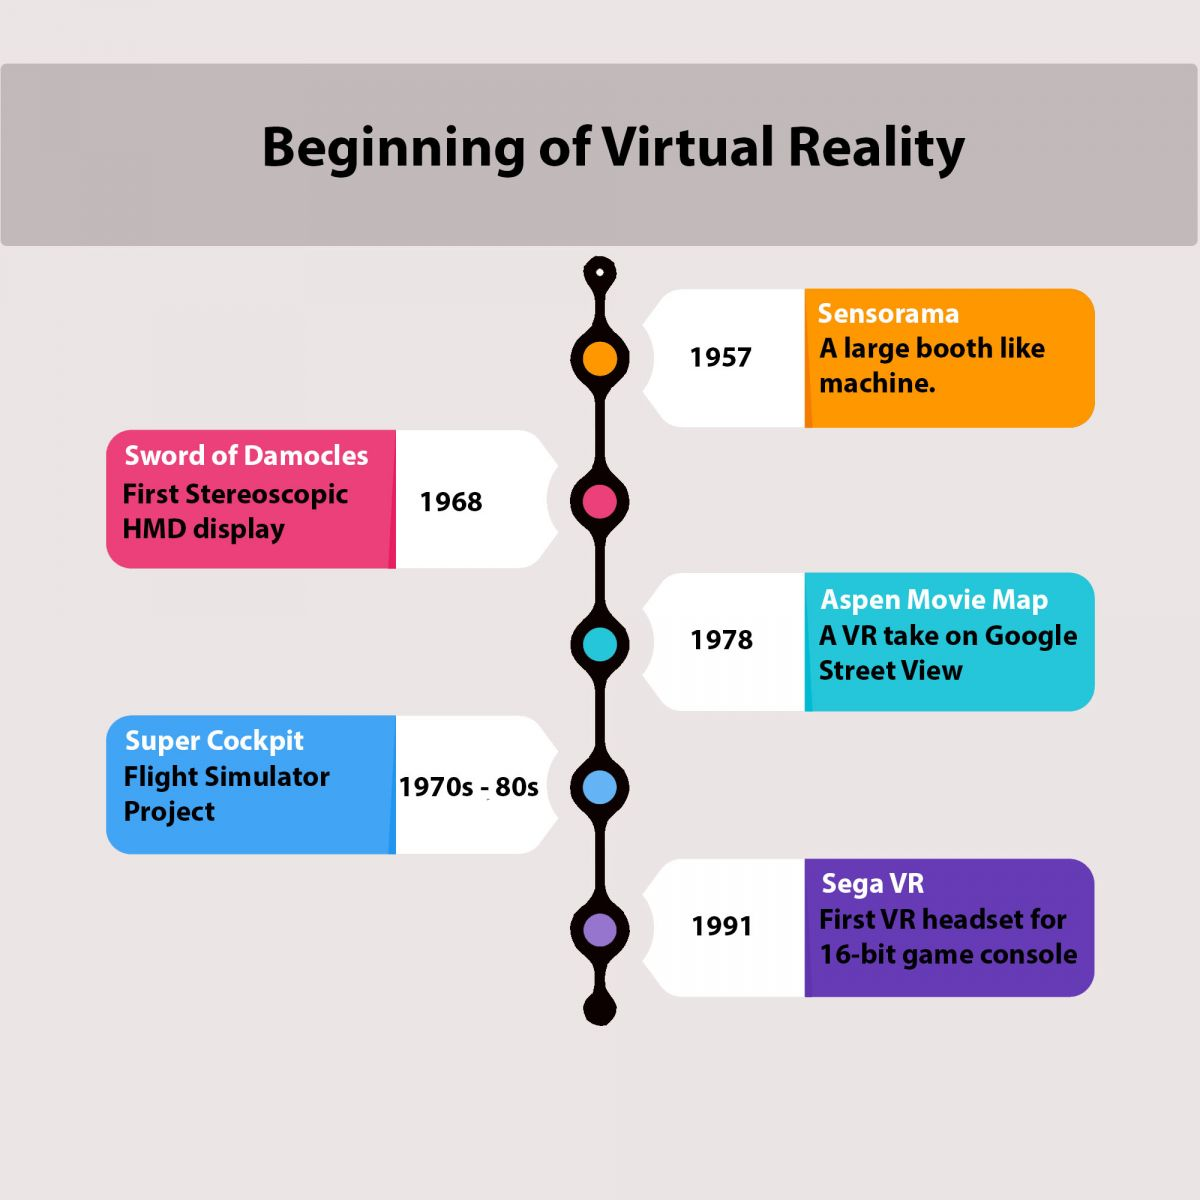 Virtual Reality Beginning Timeline